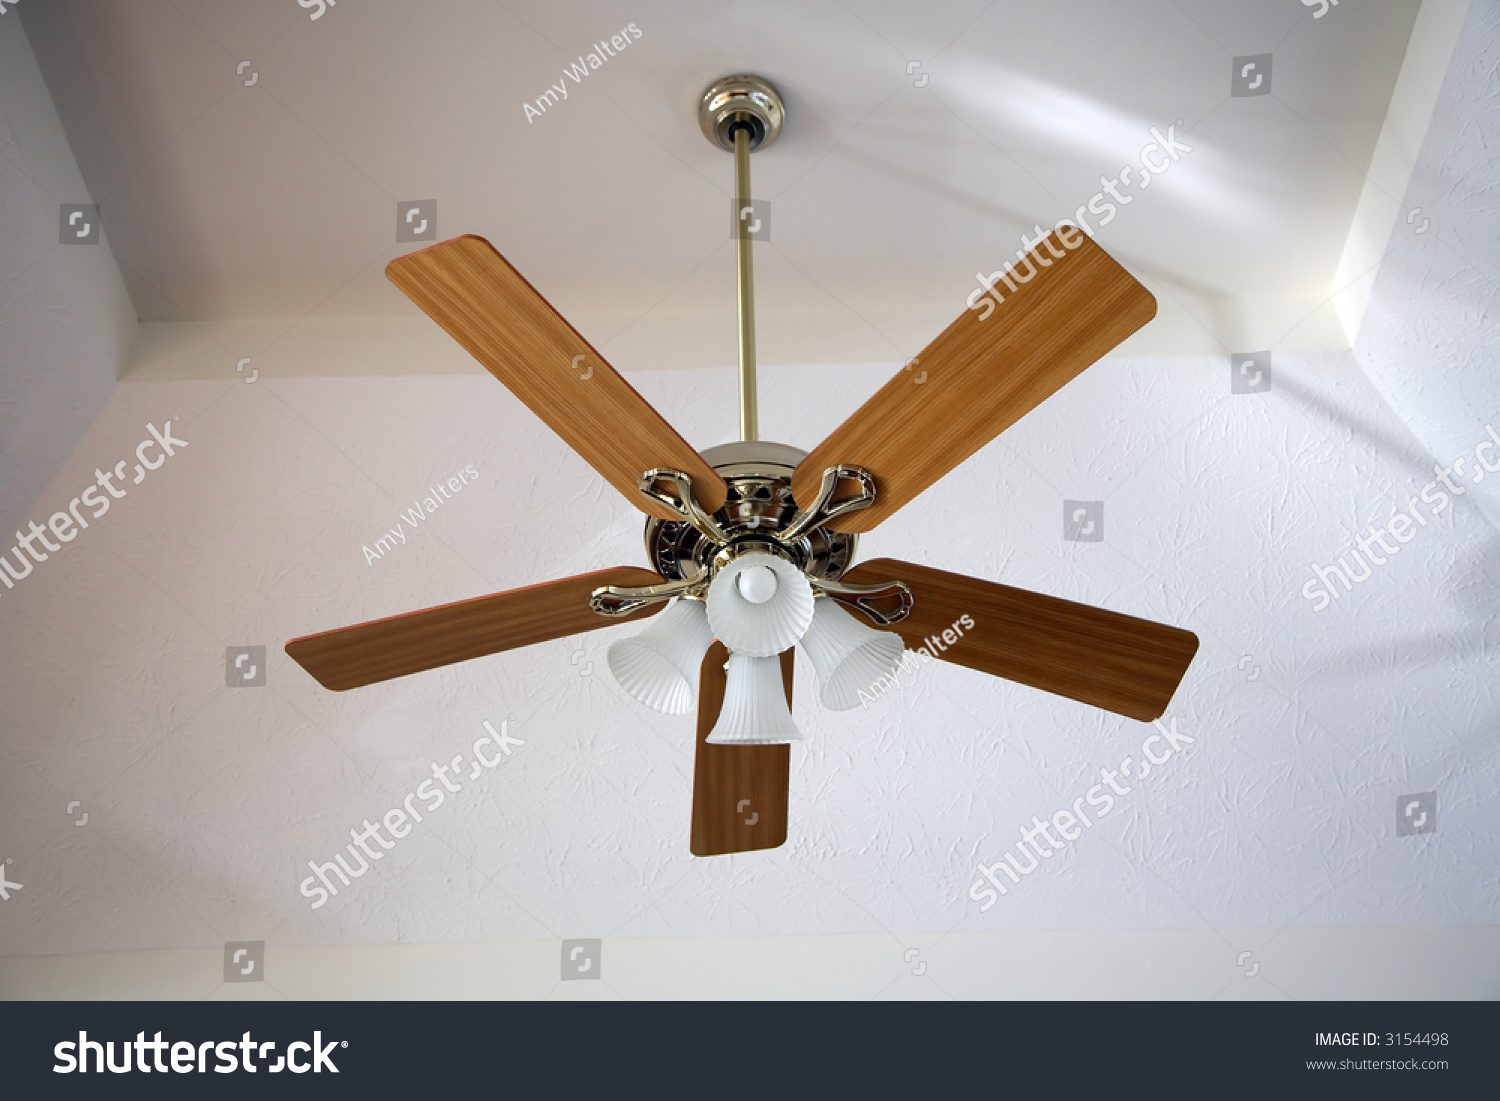 ceiling fan hanging from a vaulted ceiling stock photo 3154498 shutterstock. Black Bedroom Furniture Sets. Home Design Ideas